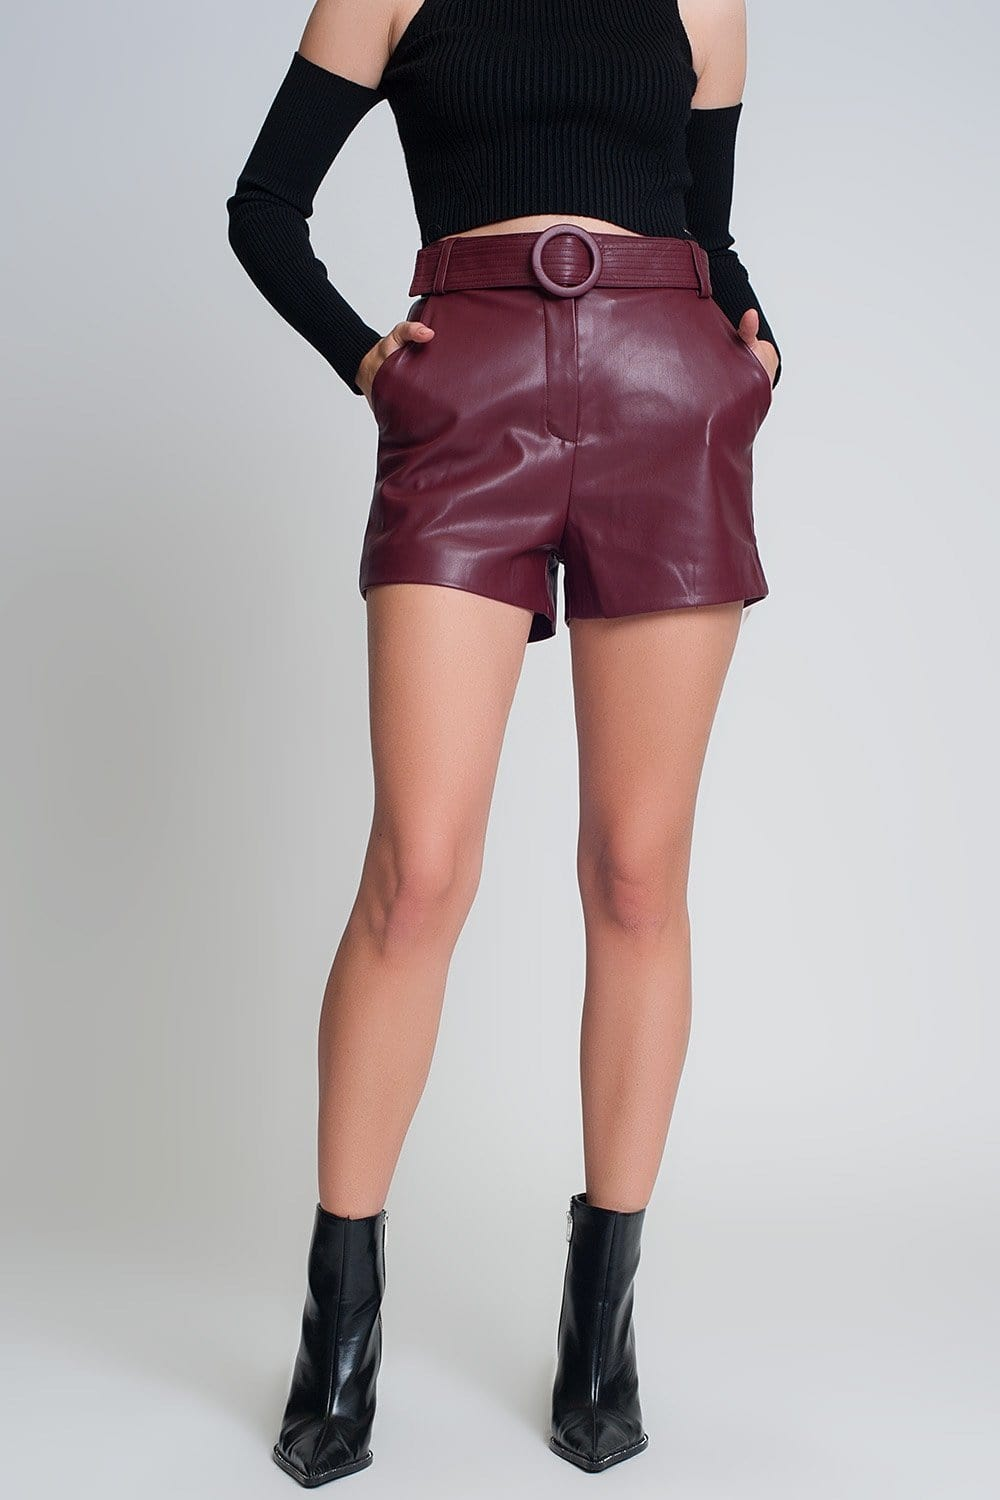 Shorts Maroon with Belt in Faux Leather - Himelhoch's